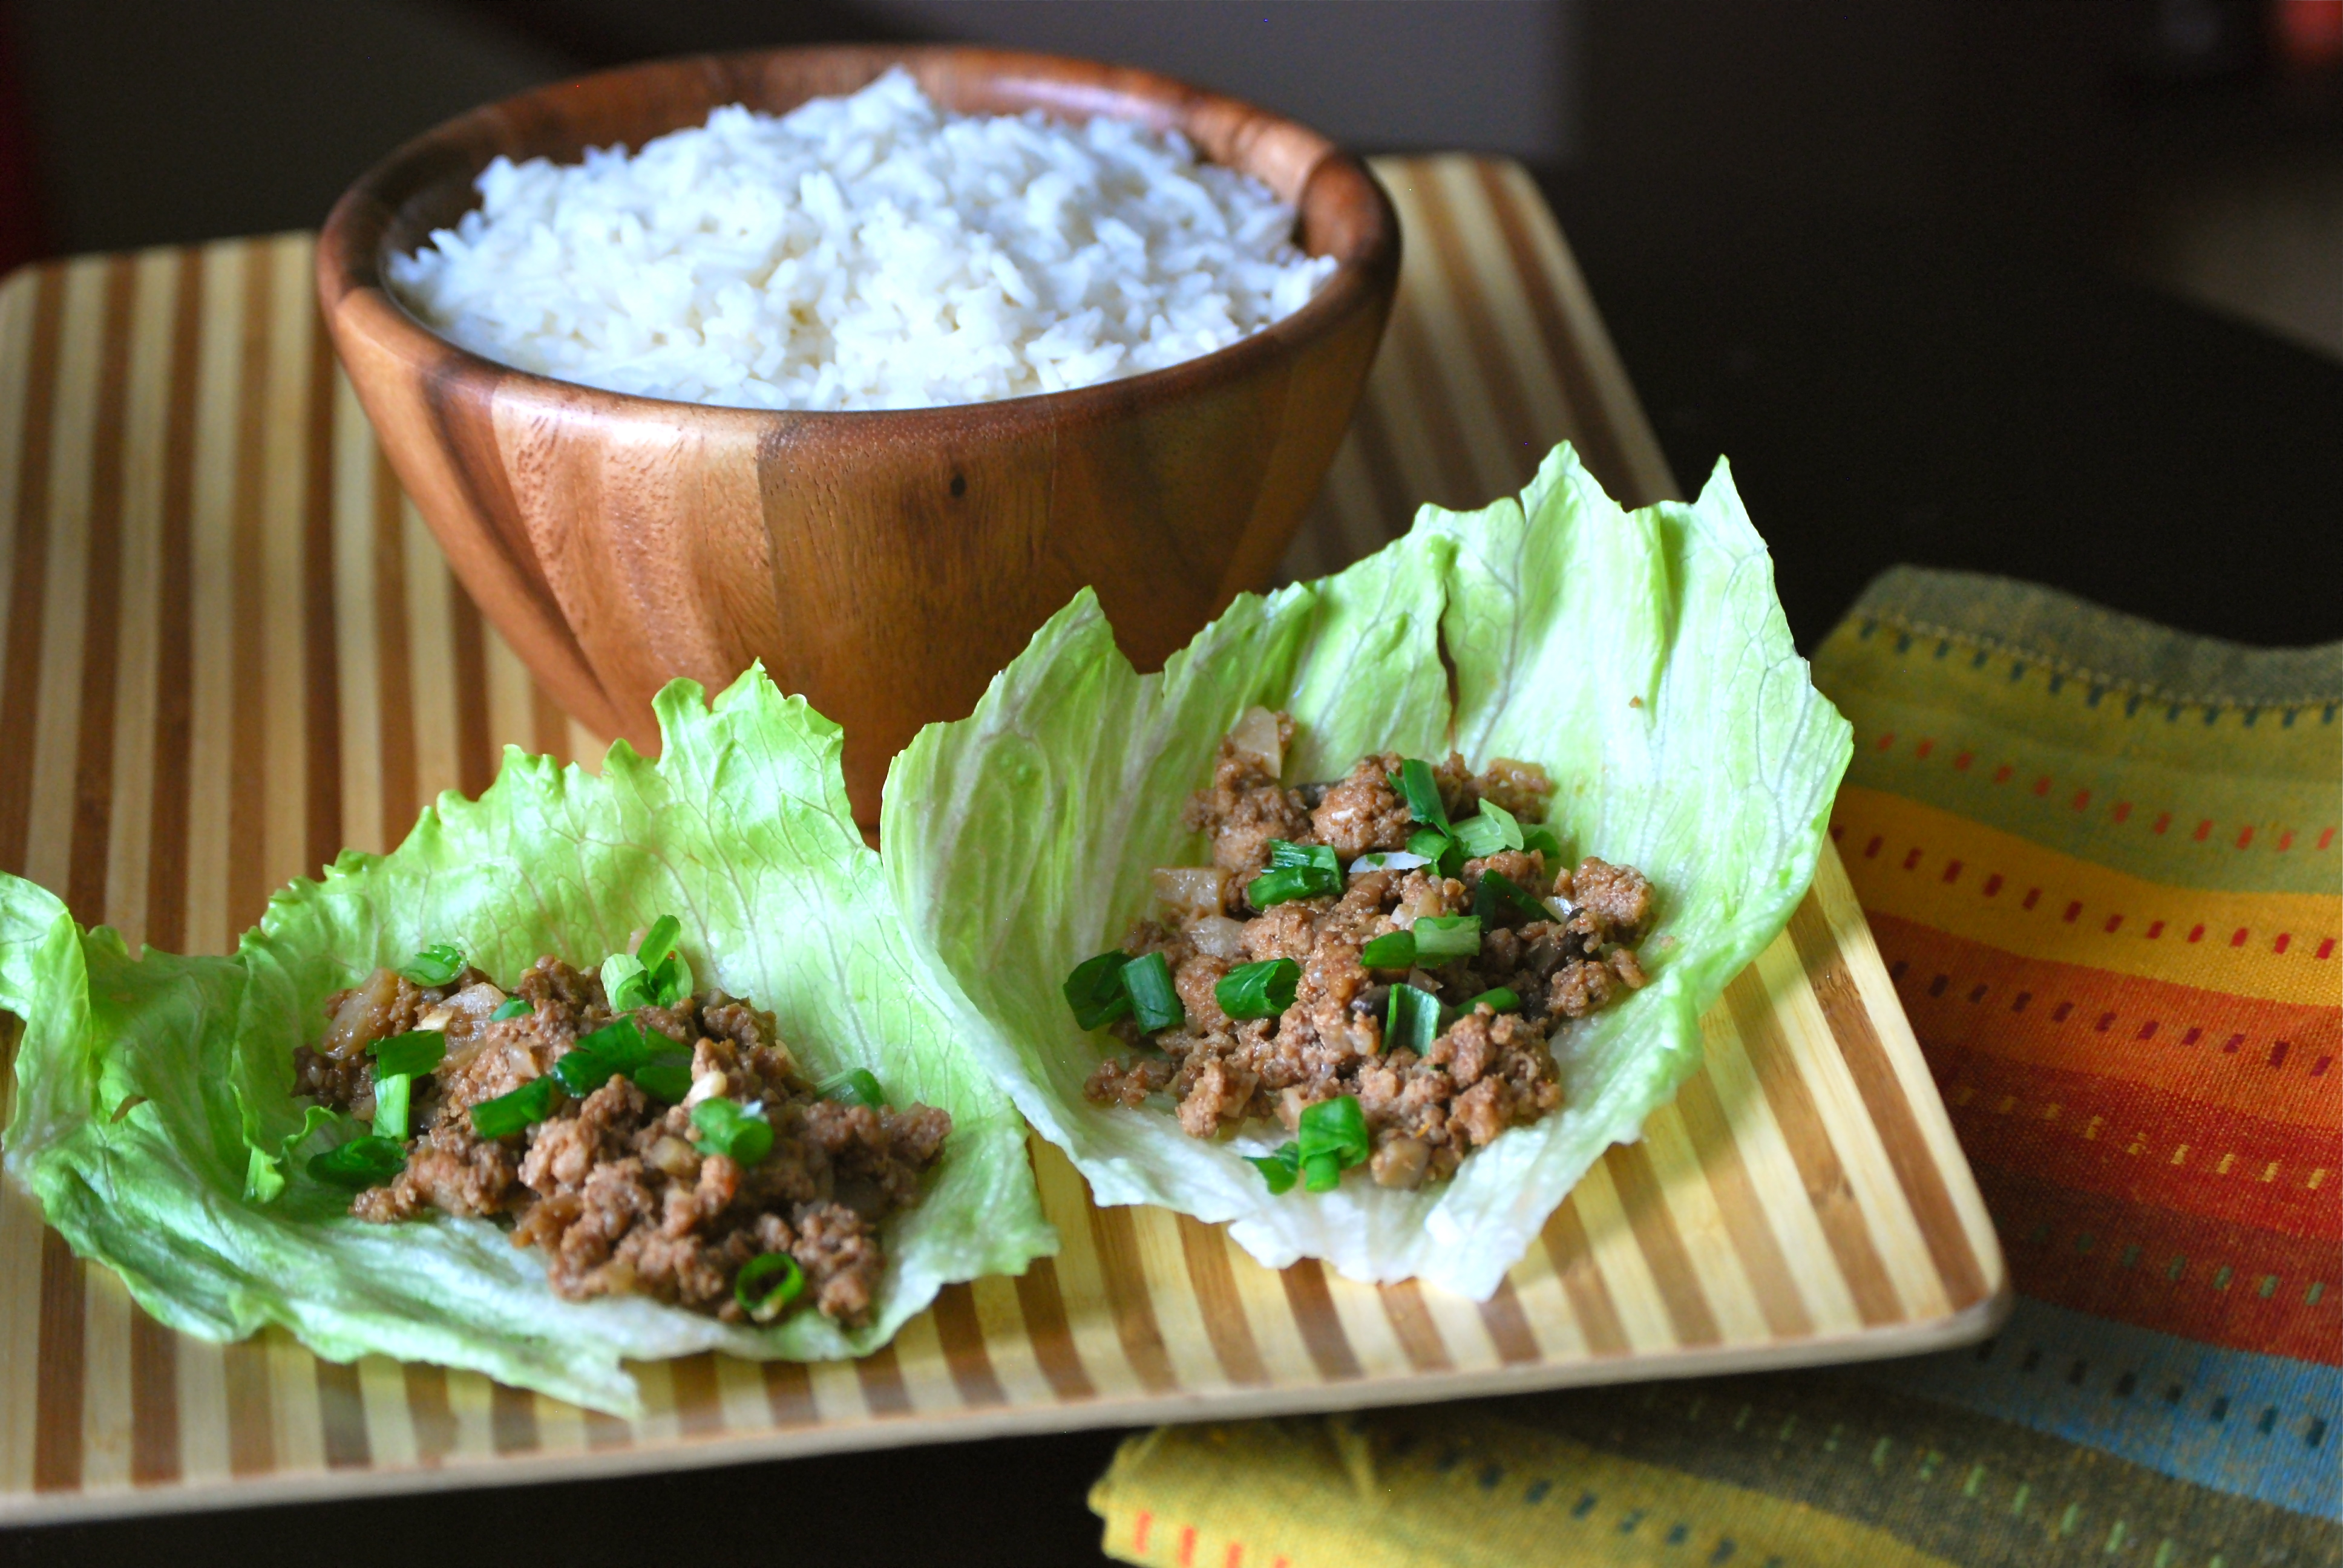 Chang's Lettuce Wraps - Macaroni and Cheesecake